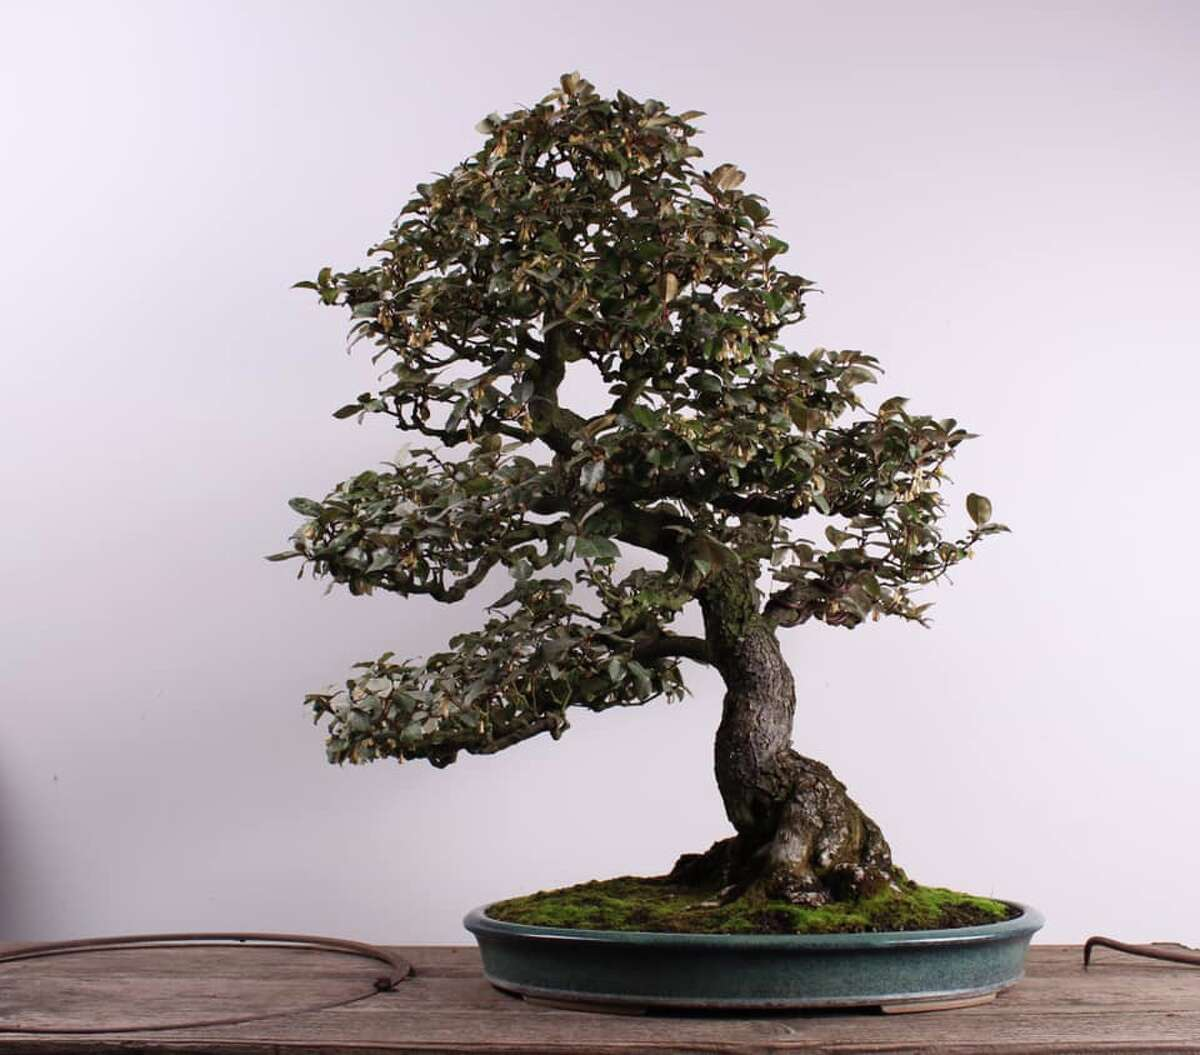 A Silverberry bonsai tree was stolen from the Bonsai Museum in Federal Way. This one was created and trained to be a bonsai in 1946 by pioneering bonsai artist Kiyoko Hatanaka.